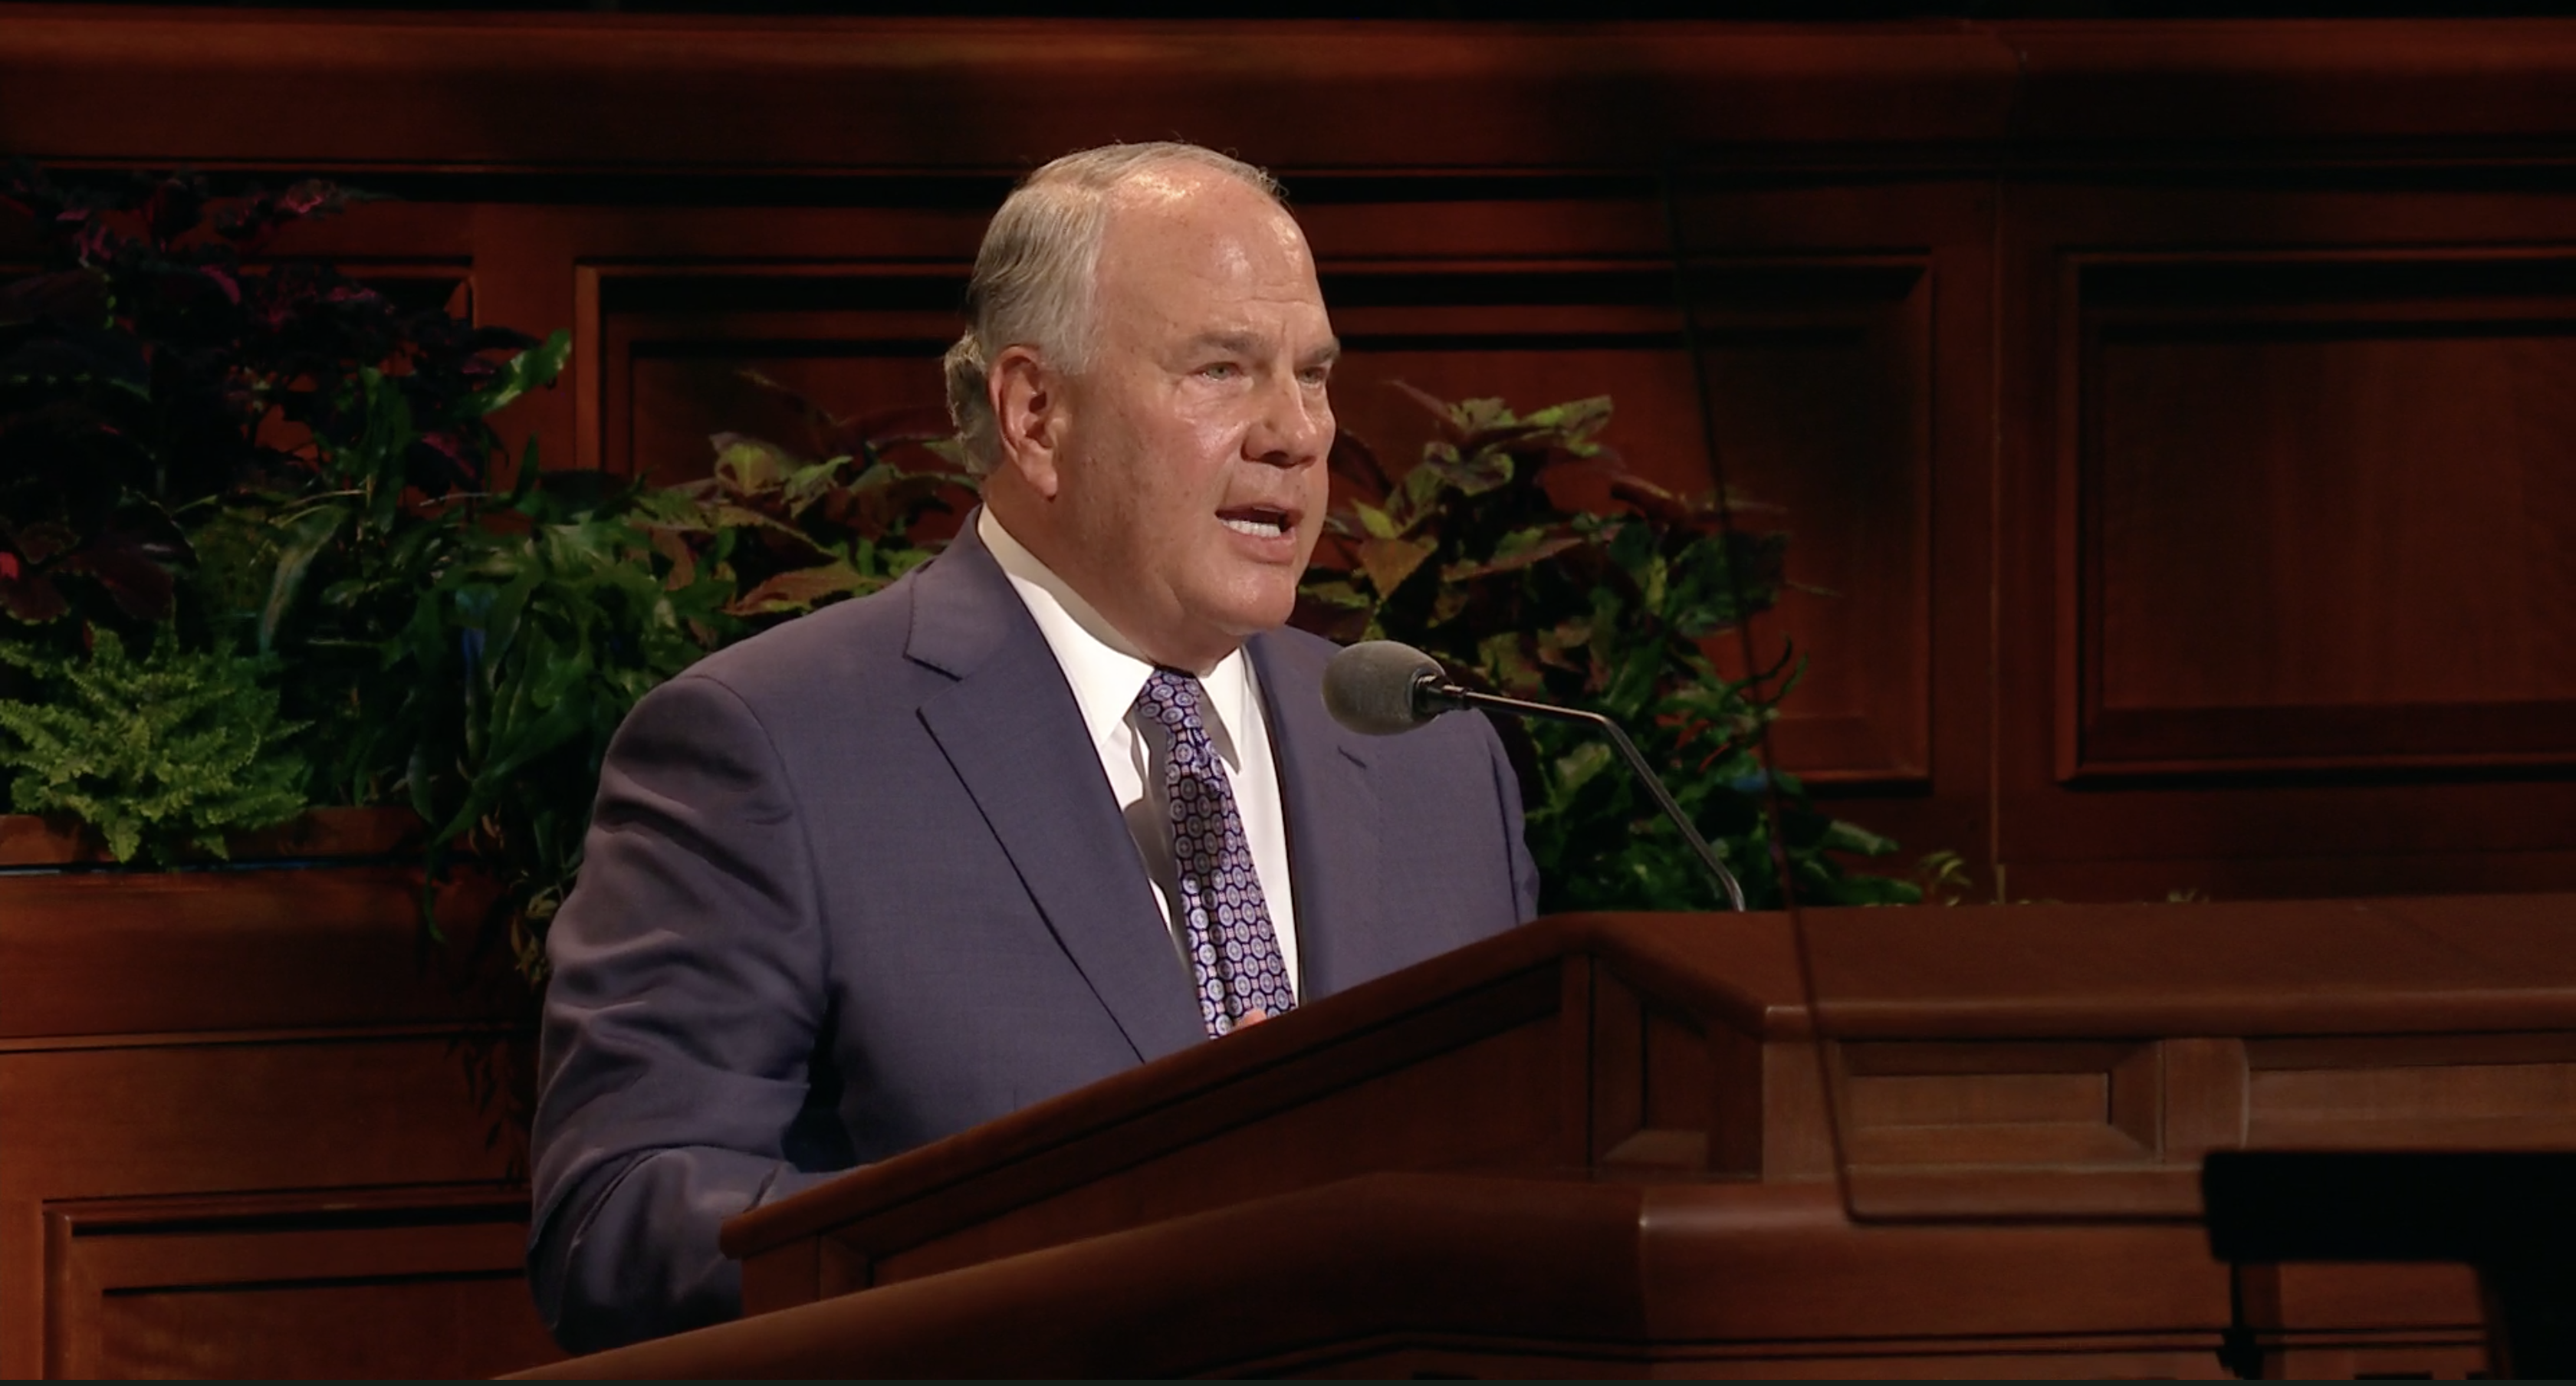 Elder Ronald A. Rasband of the Quorum of the Twelve Apostles speaks during the Saturday afternoon session in the 189th Semiannual General Conference of the Church on Oct. 5, 2019.